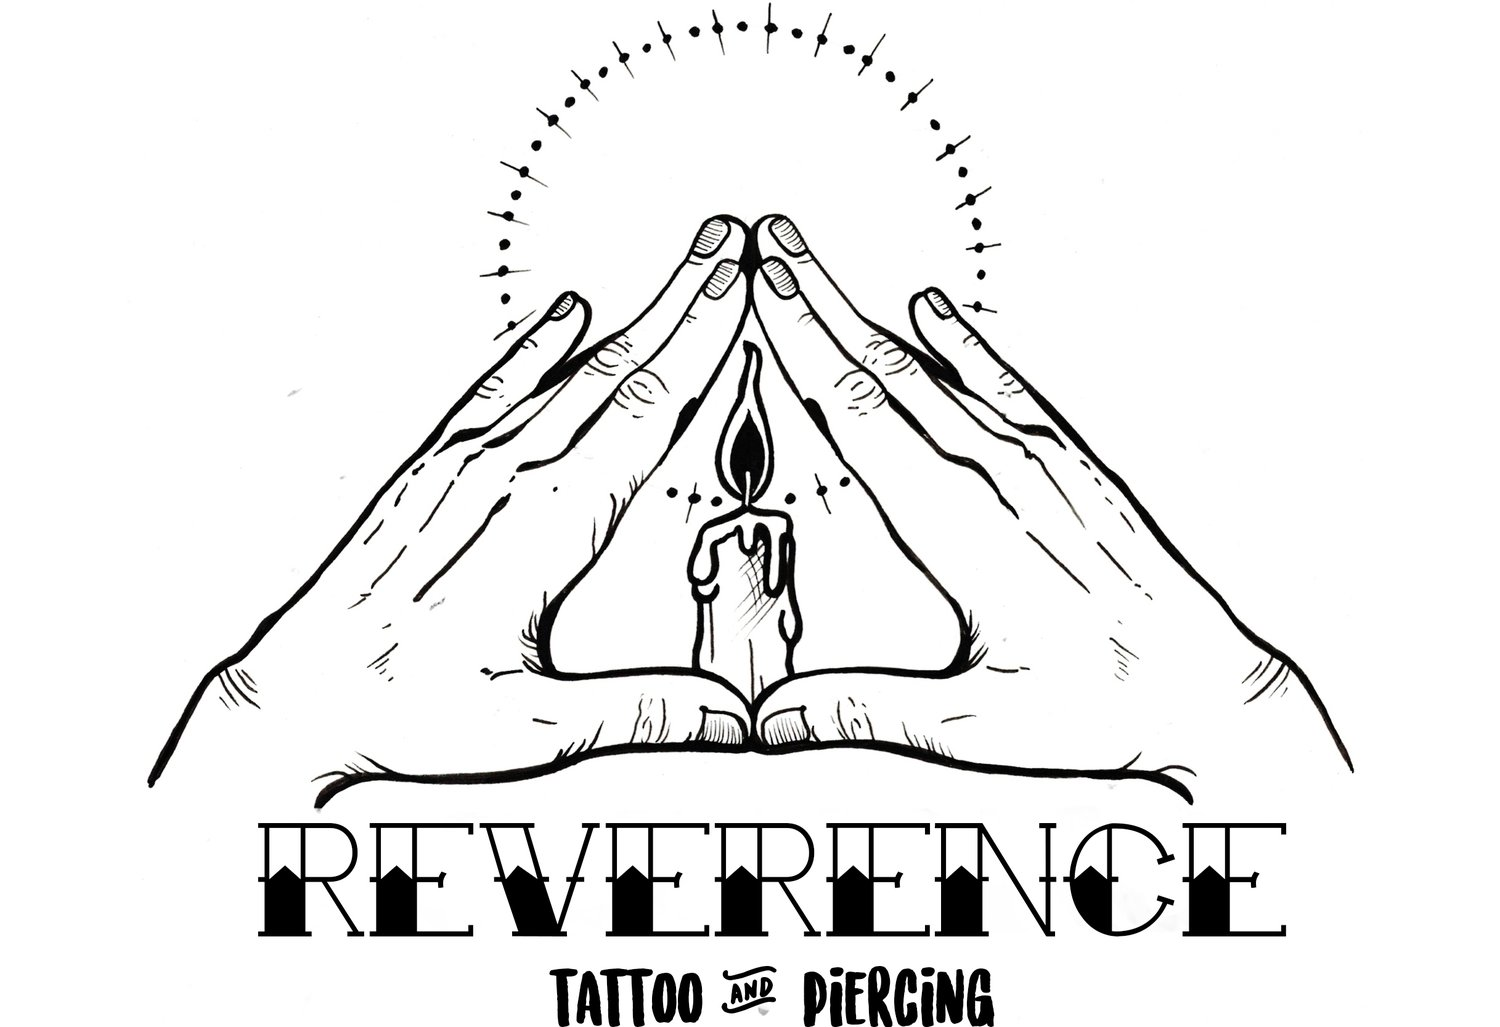 Reverence Tattoo